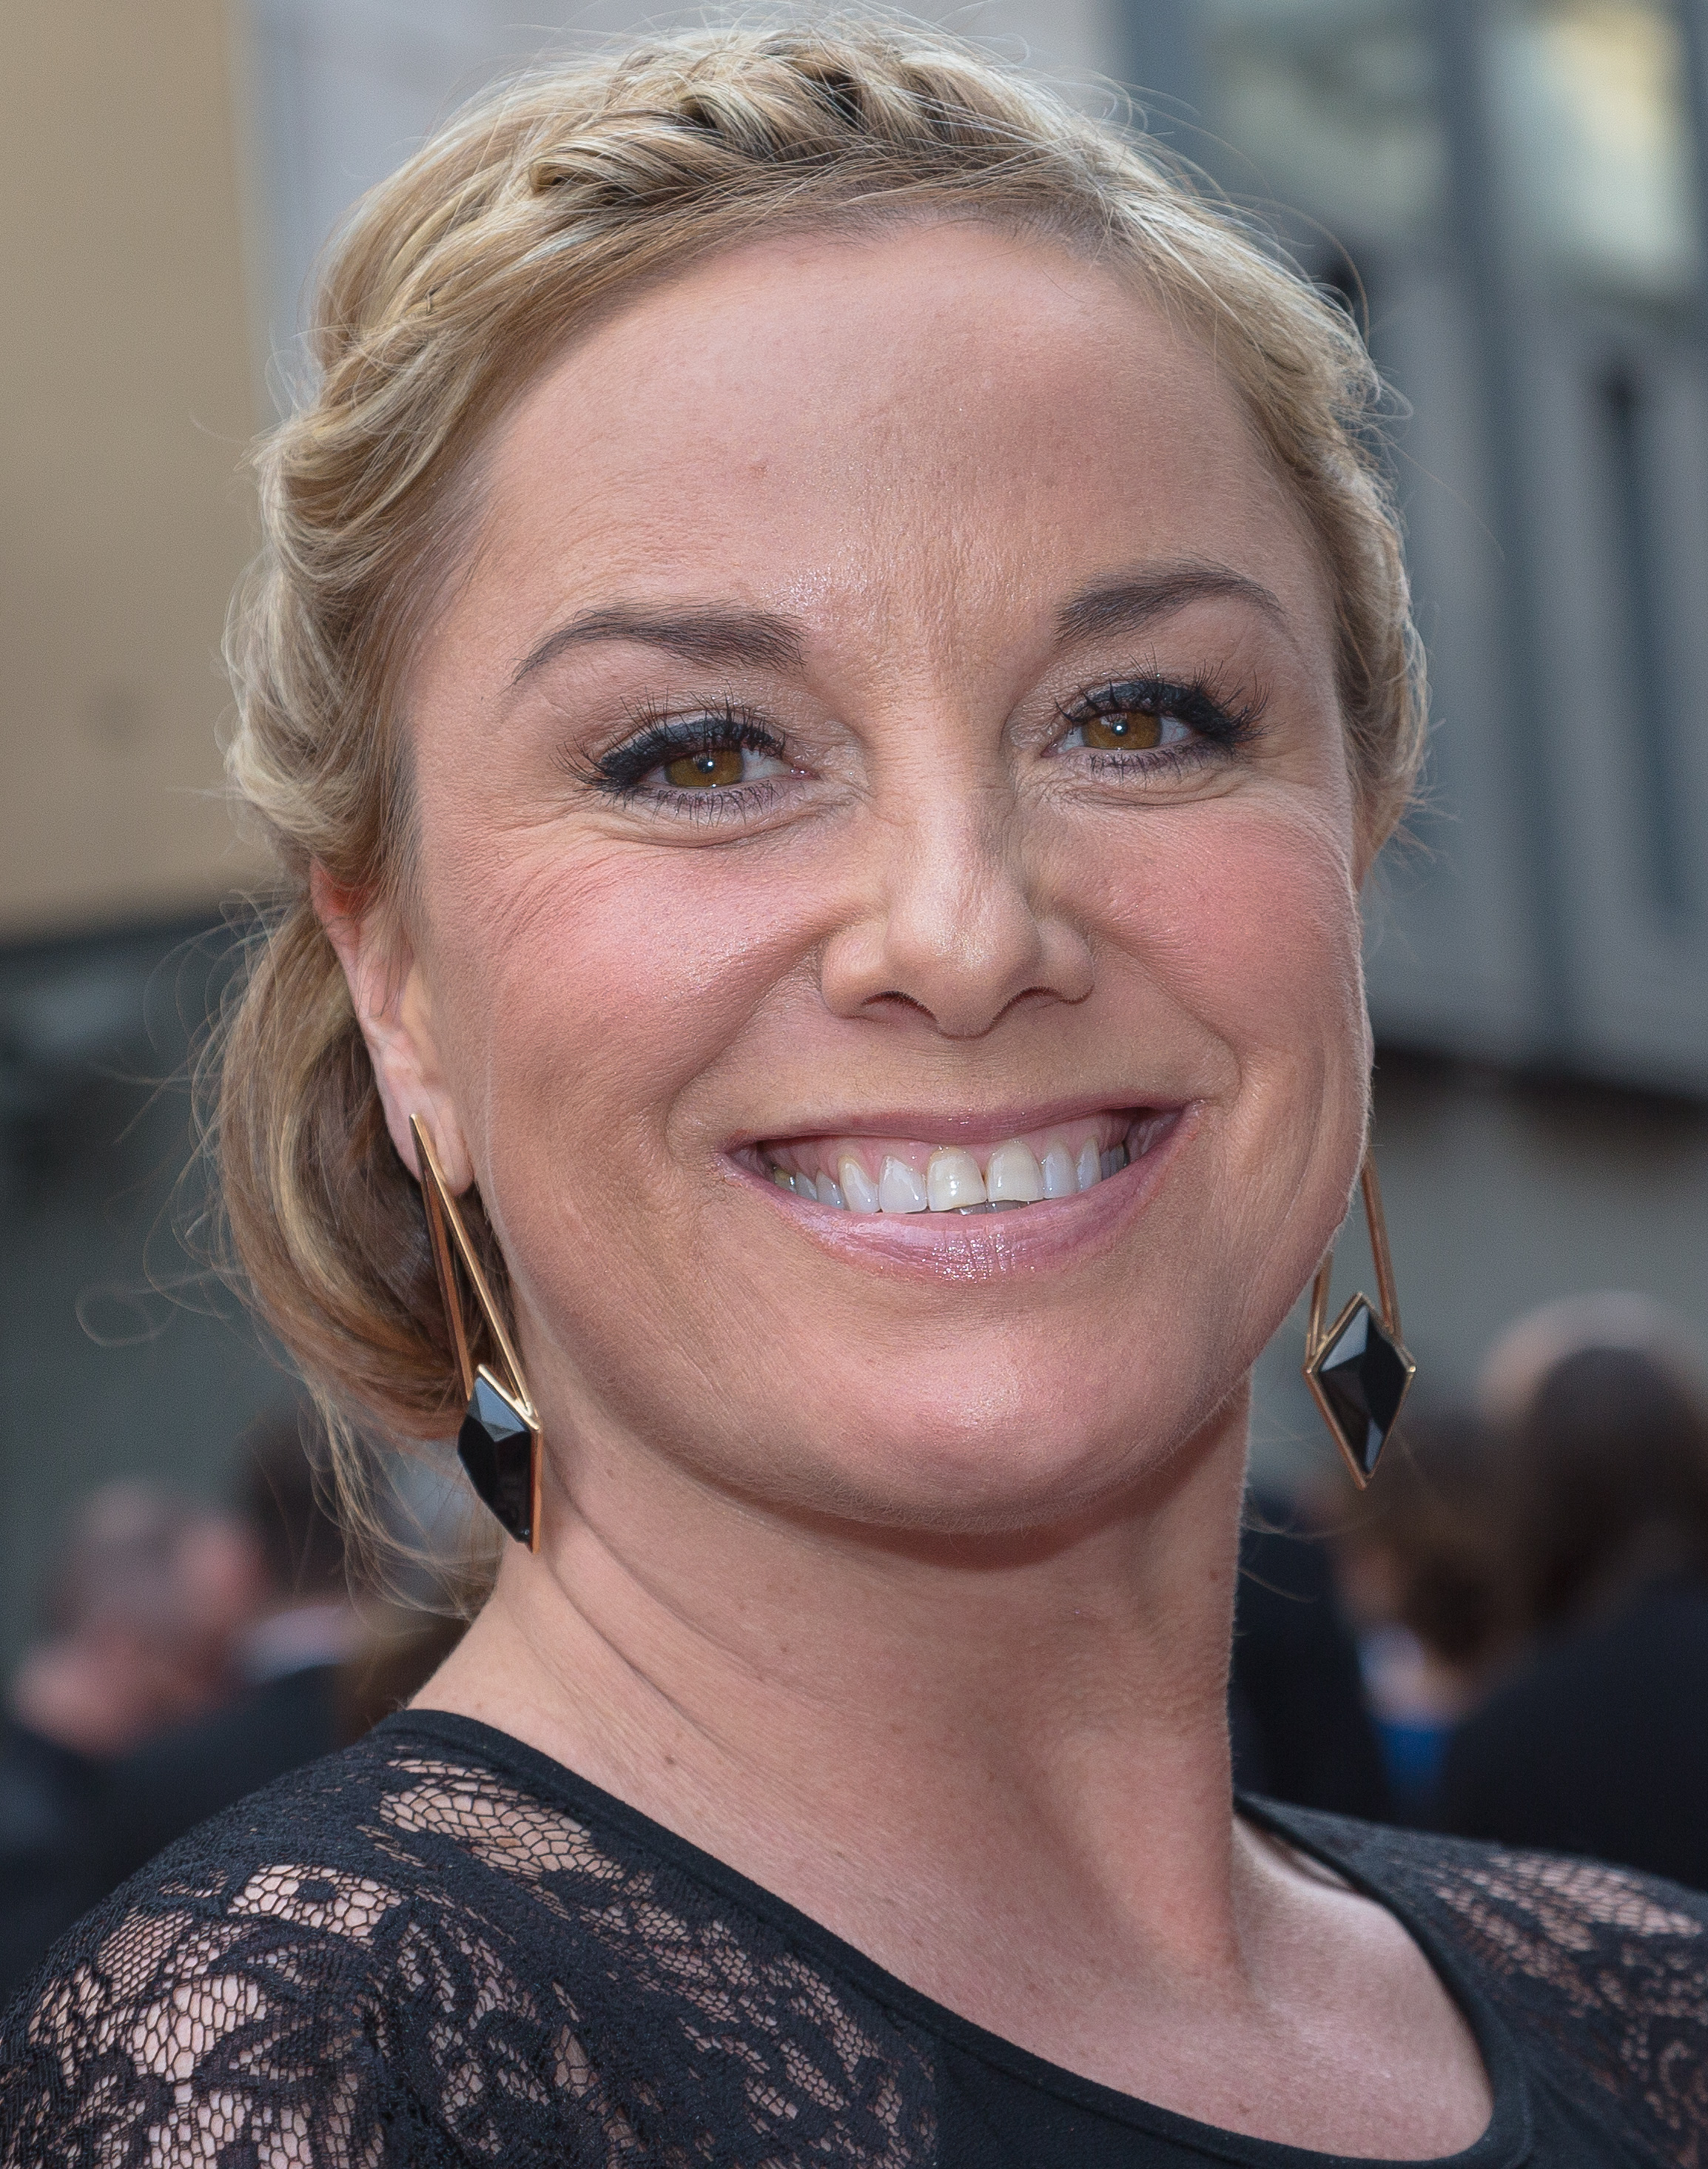 Photos Tamzin Outhwaite naked (49 photos), Pussy